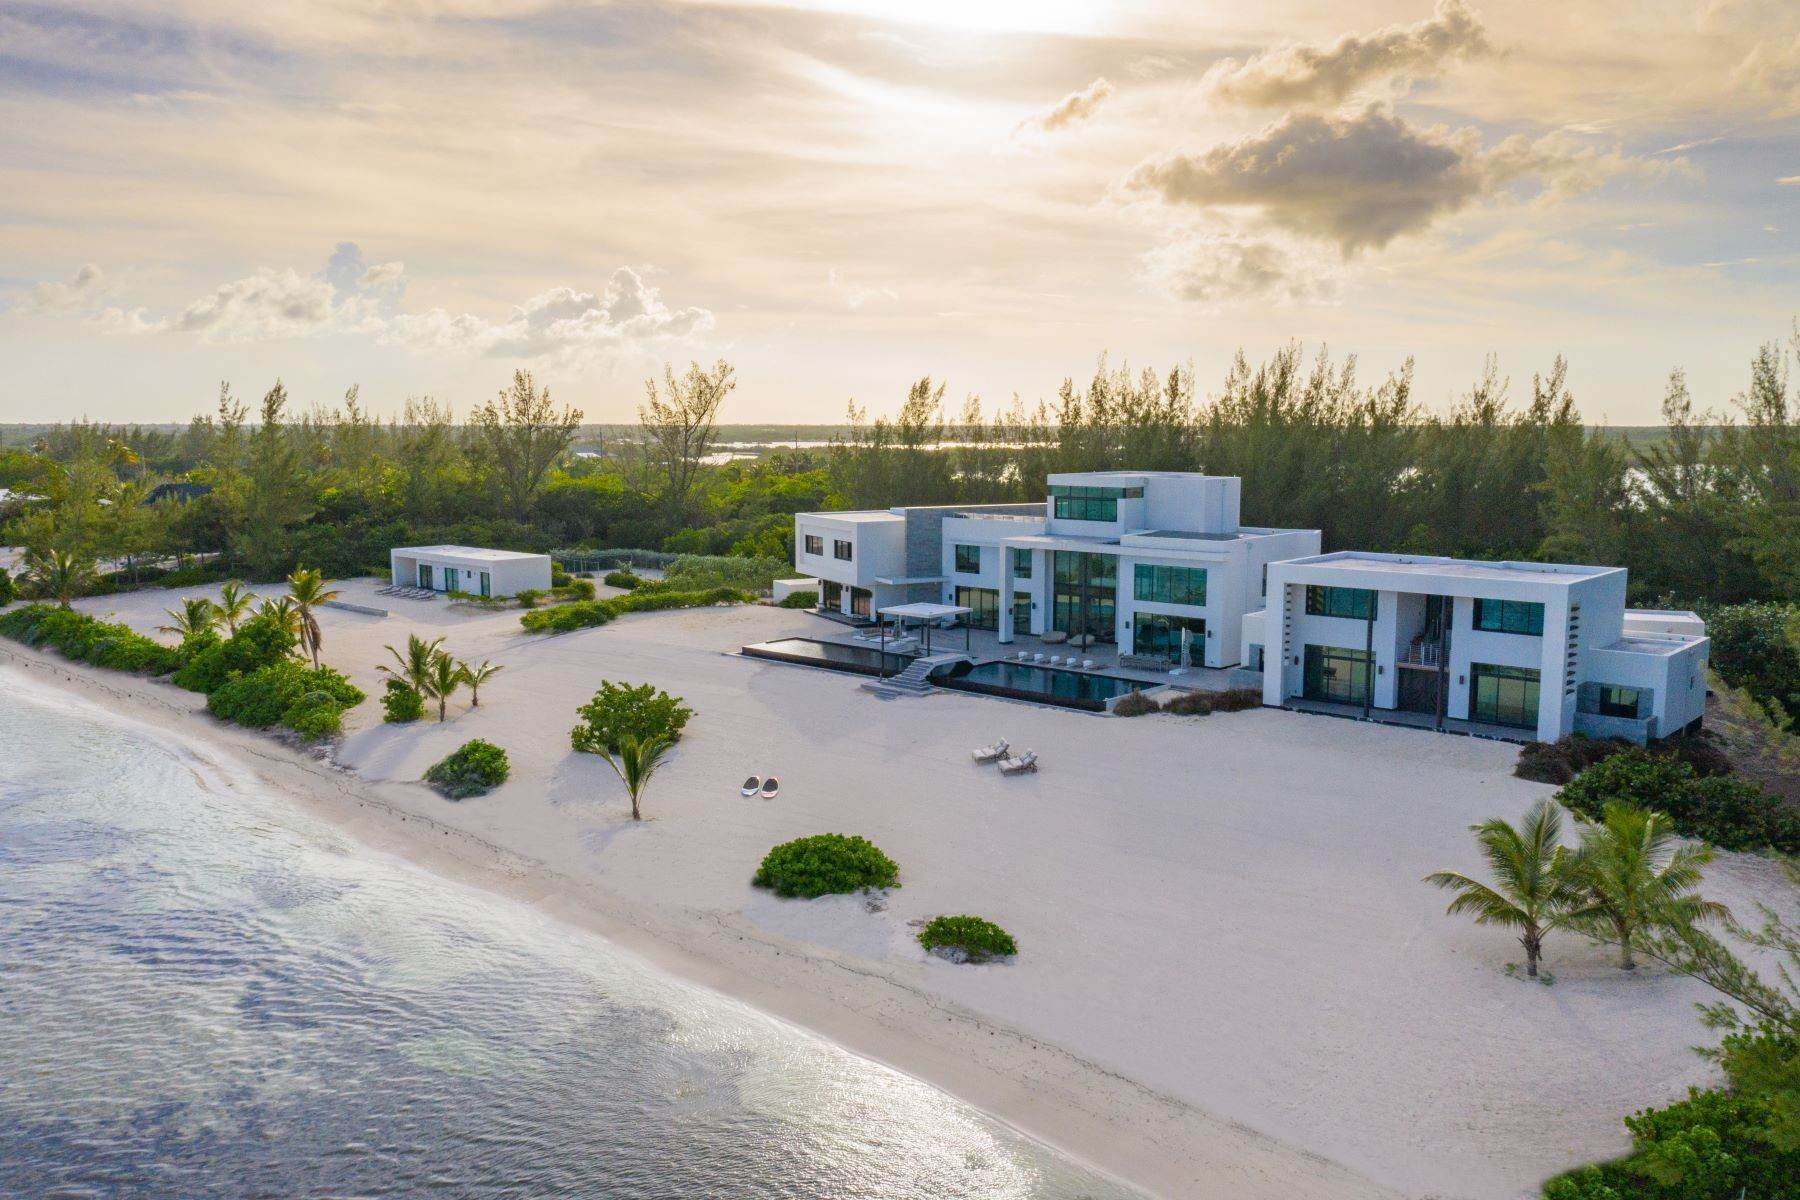 Single Family Homes for Sale at Sea of Dreams, Pease Bay - COVID Safe Haven Bodden Town, Grand Cayman Cayman Islands